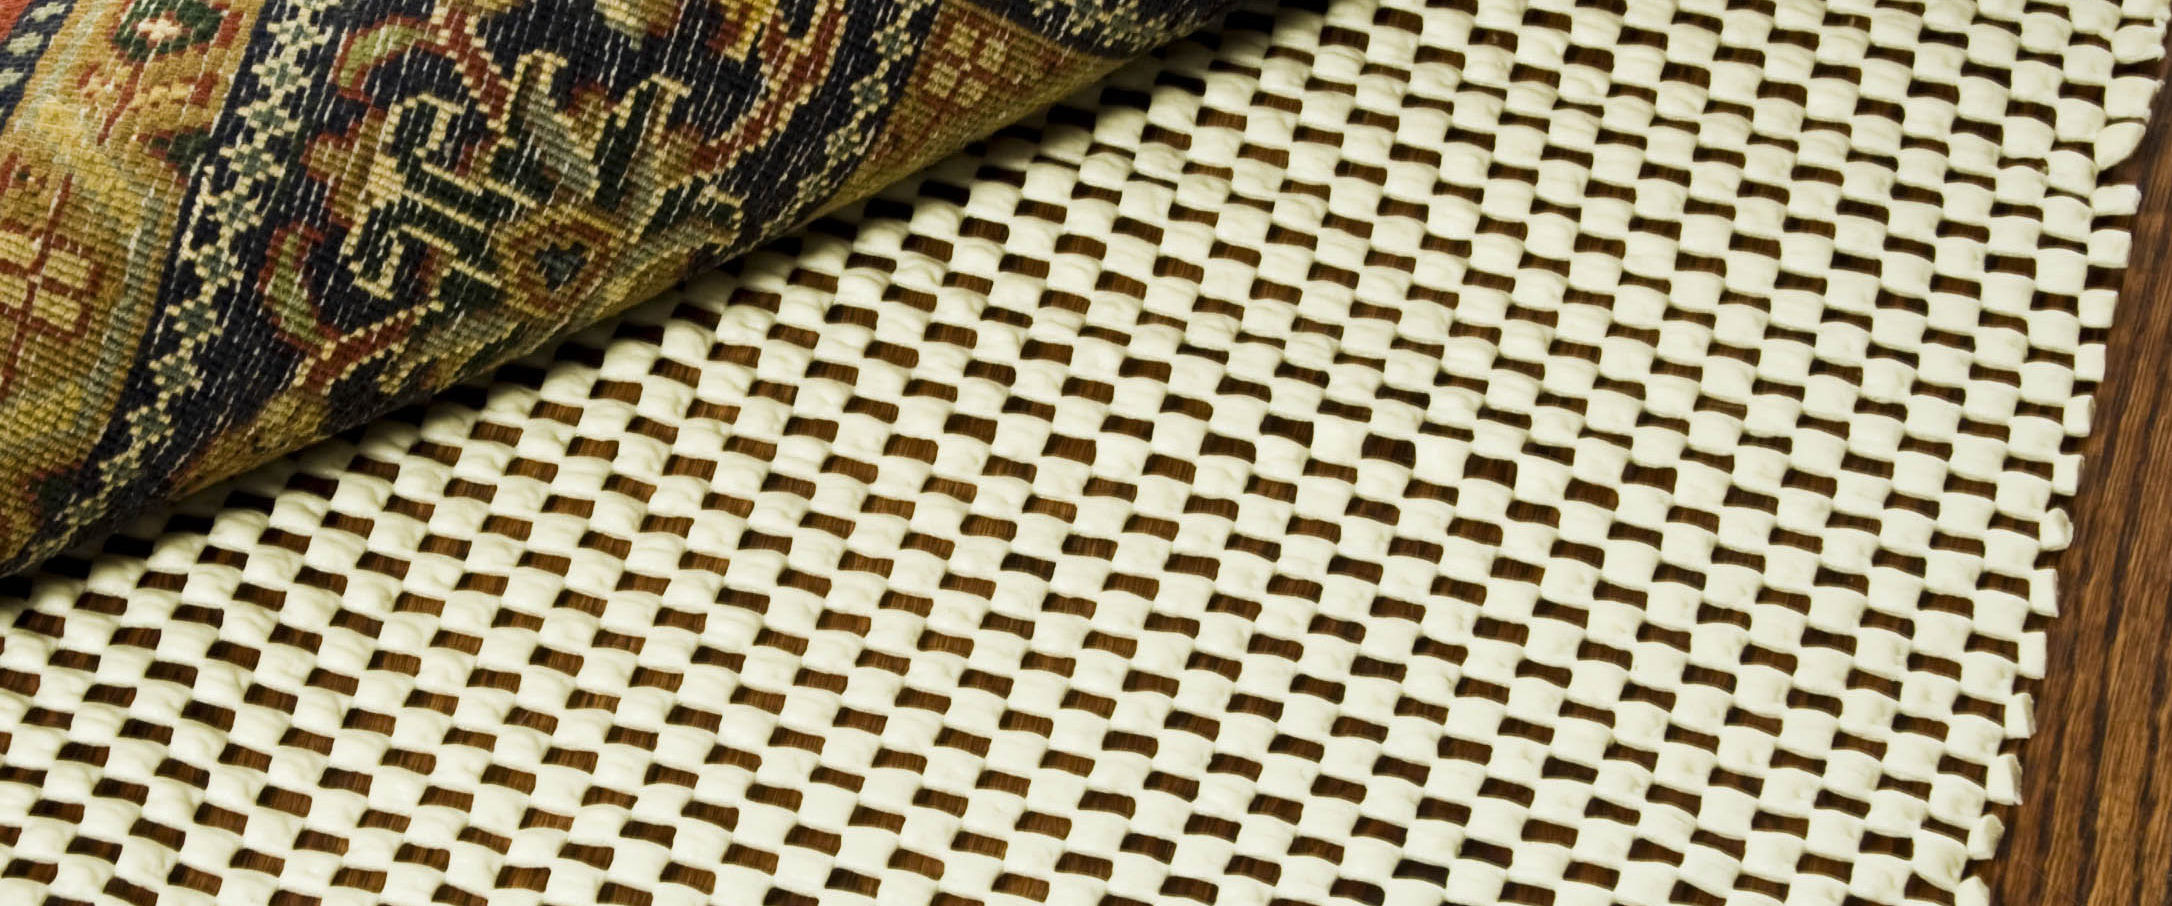 rug pads for hardwood floors of how to stop throw rugs from slipping on carpet rugs ideas with rug pad small jute area protector top rated pads carpet non stick backing slip outdoor thin